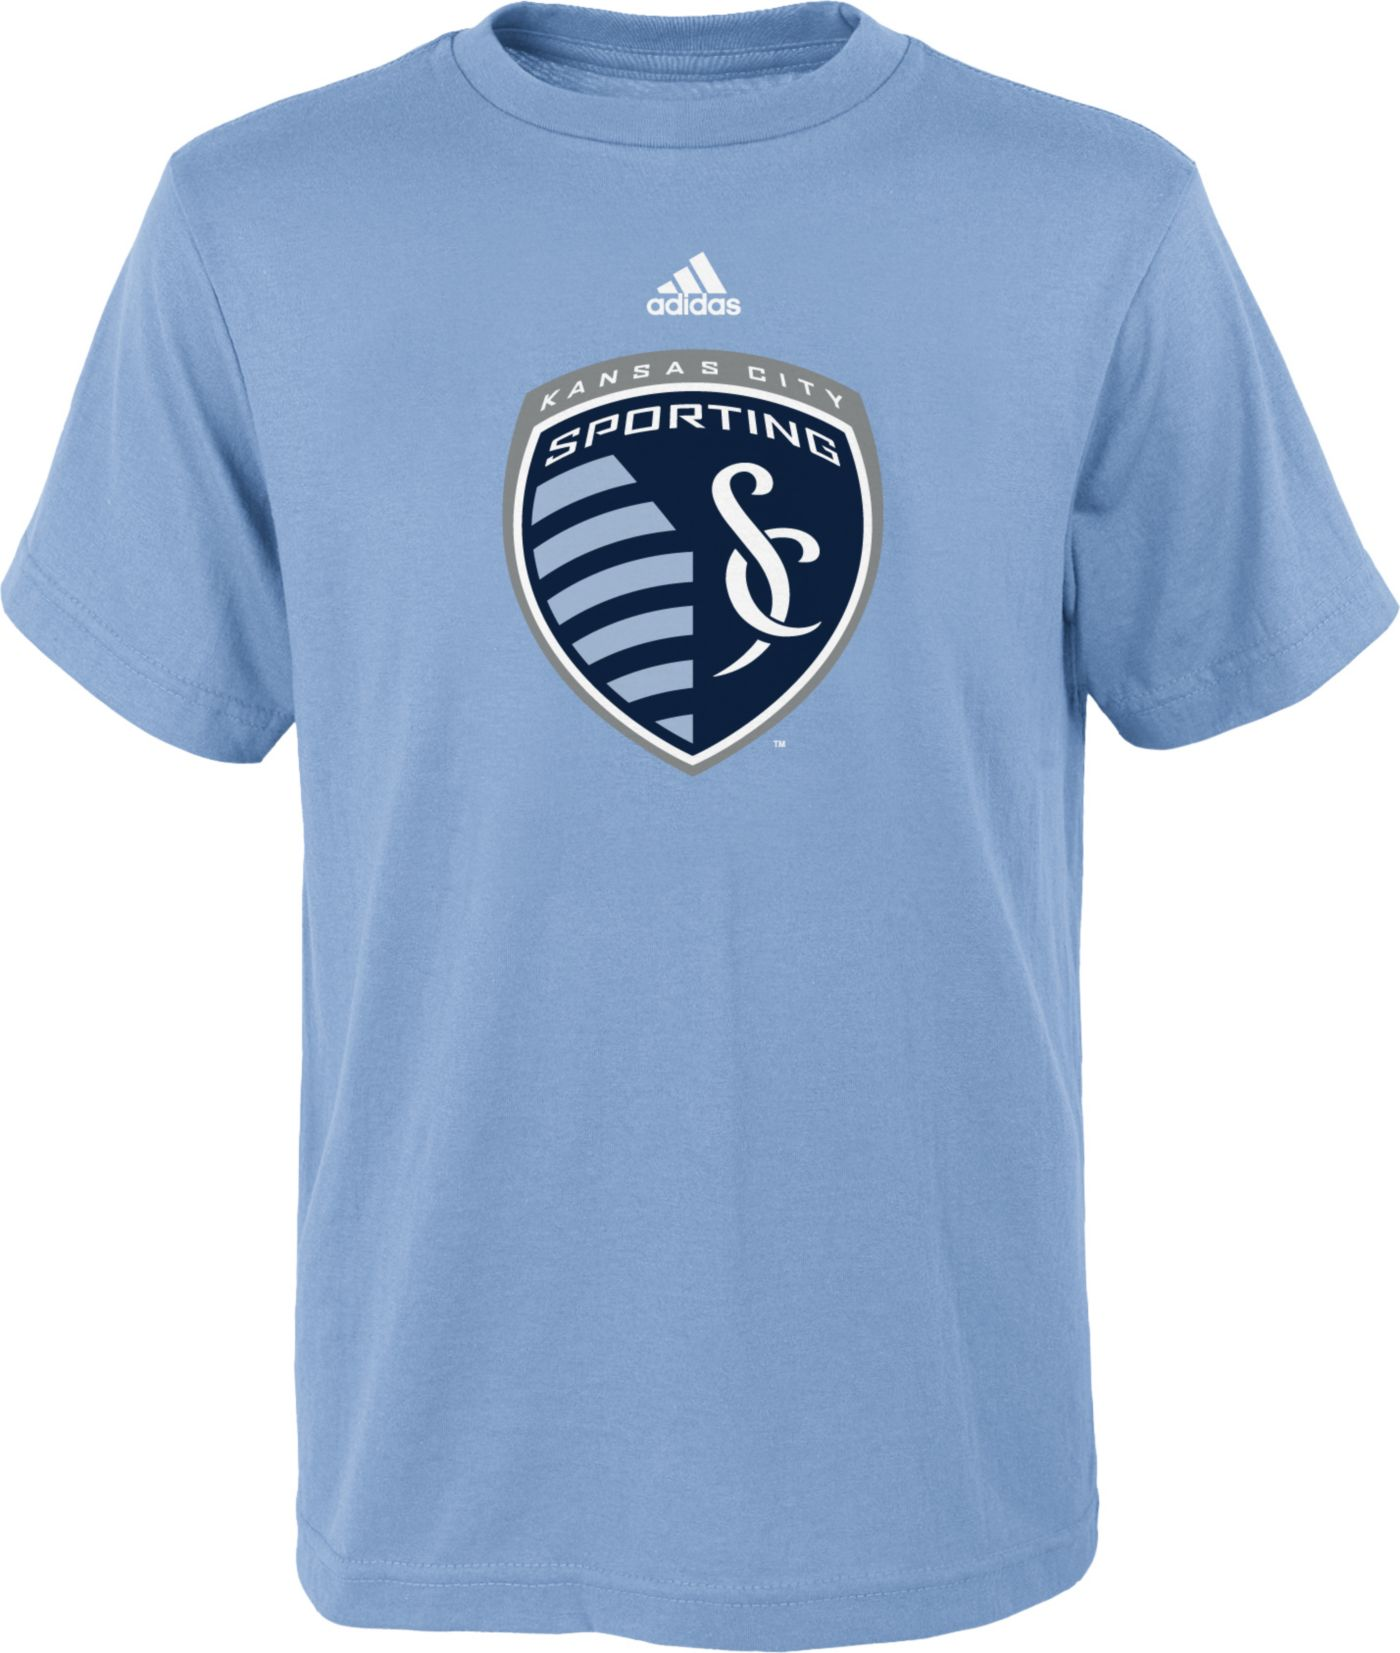 adidas Youth Sporting Kansas City Primary Logo Blue T-Shirt